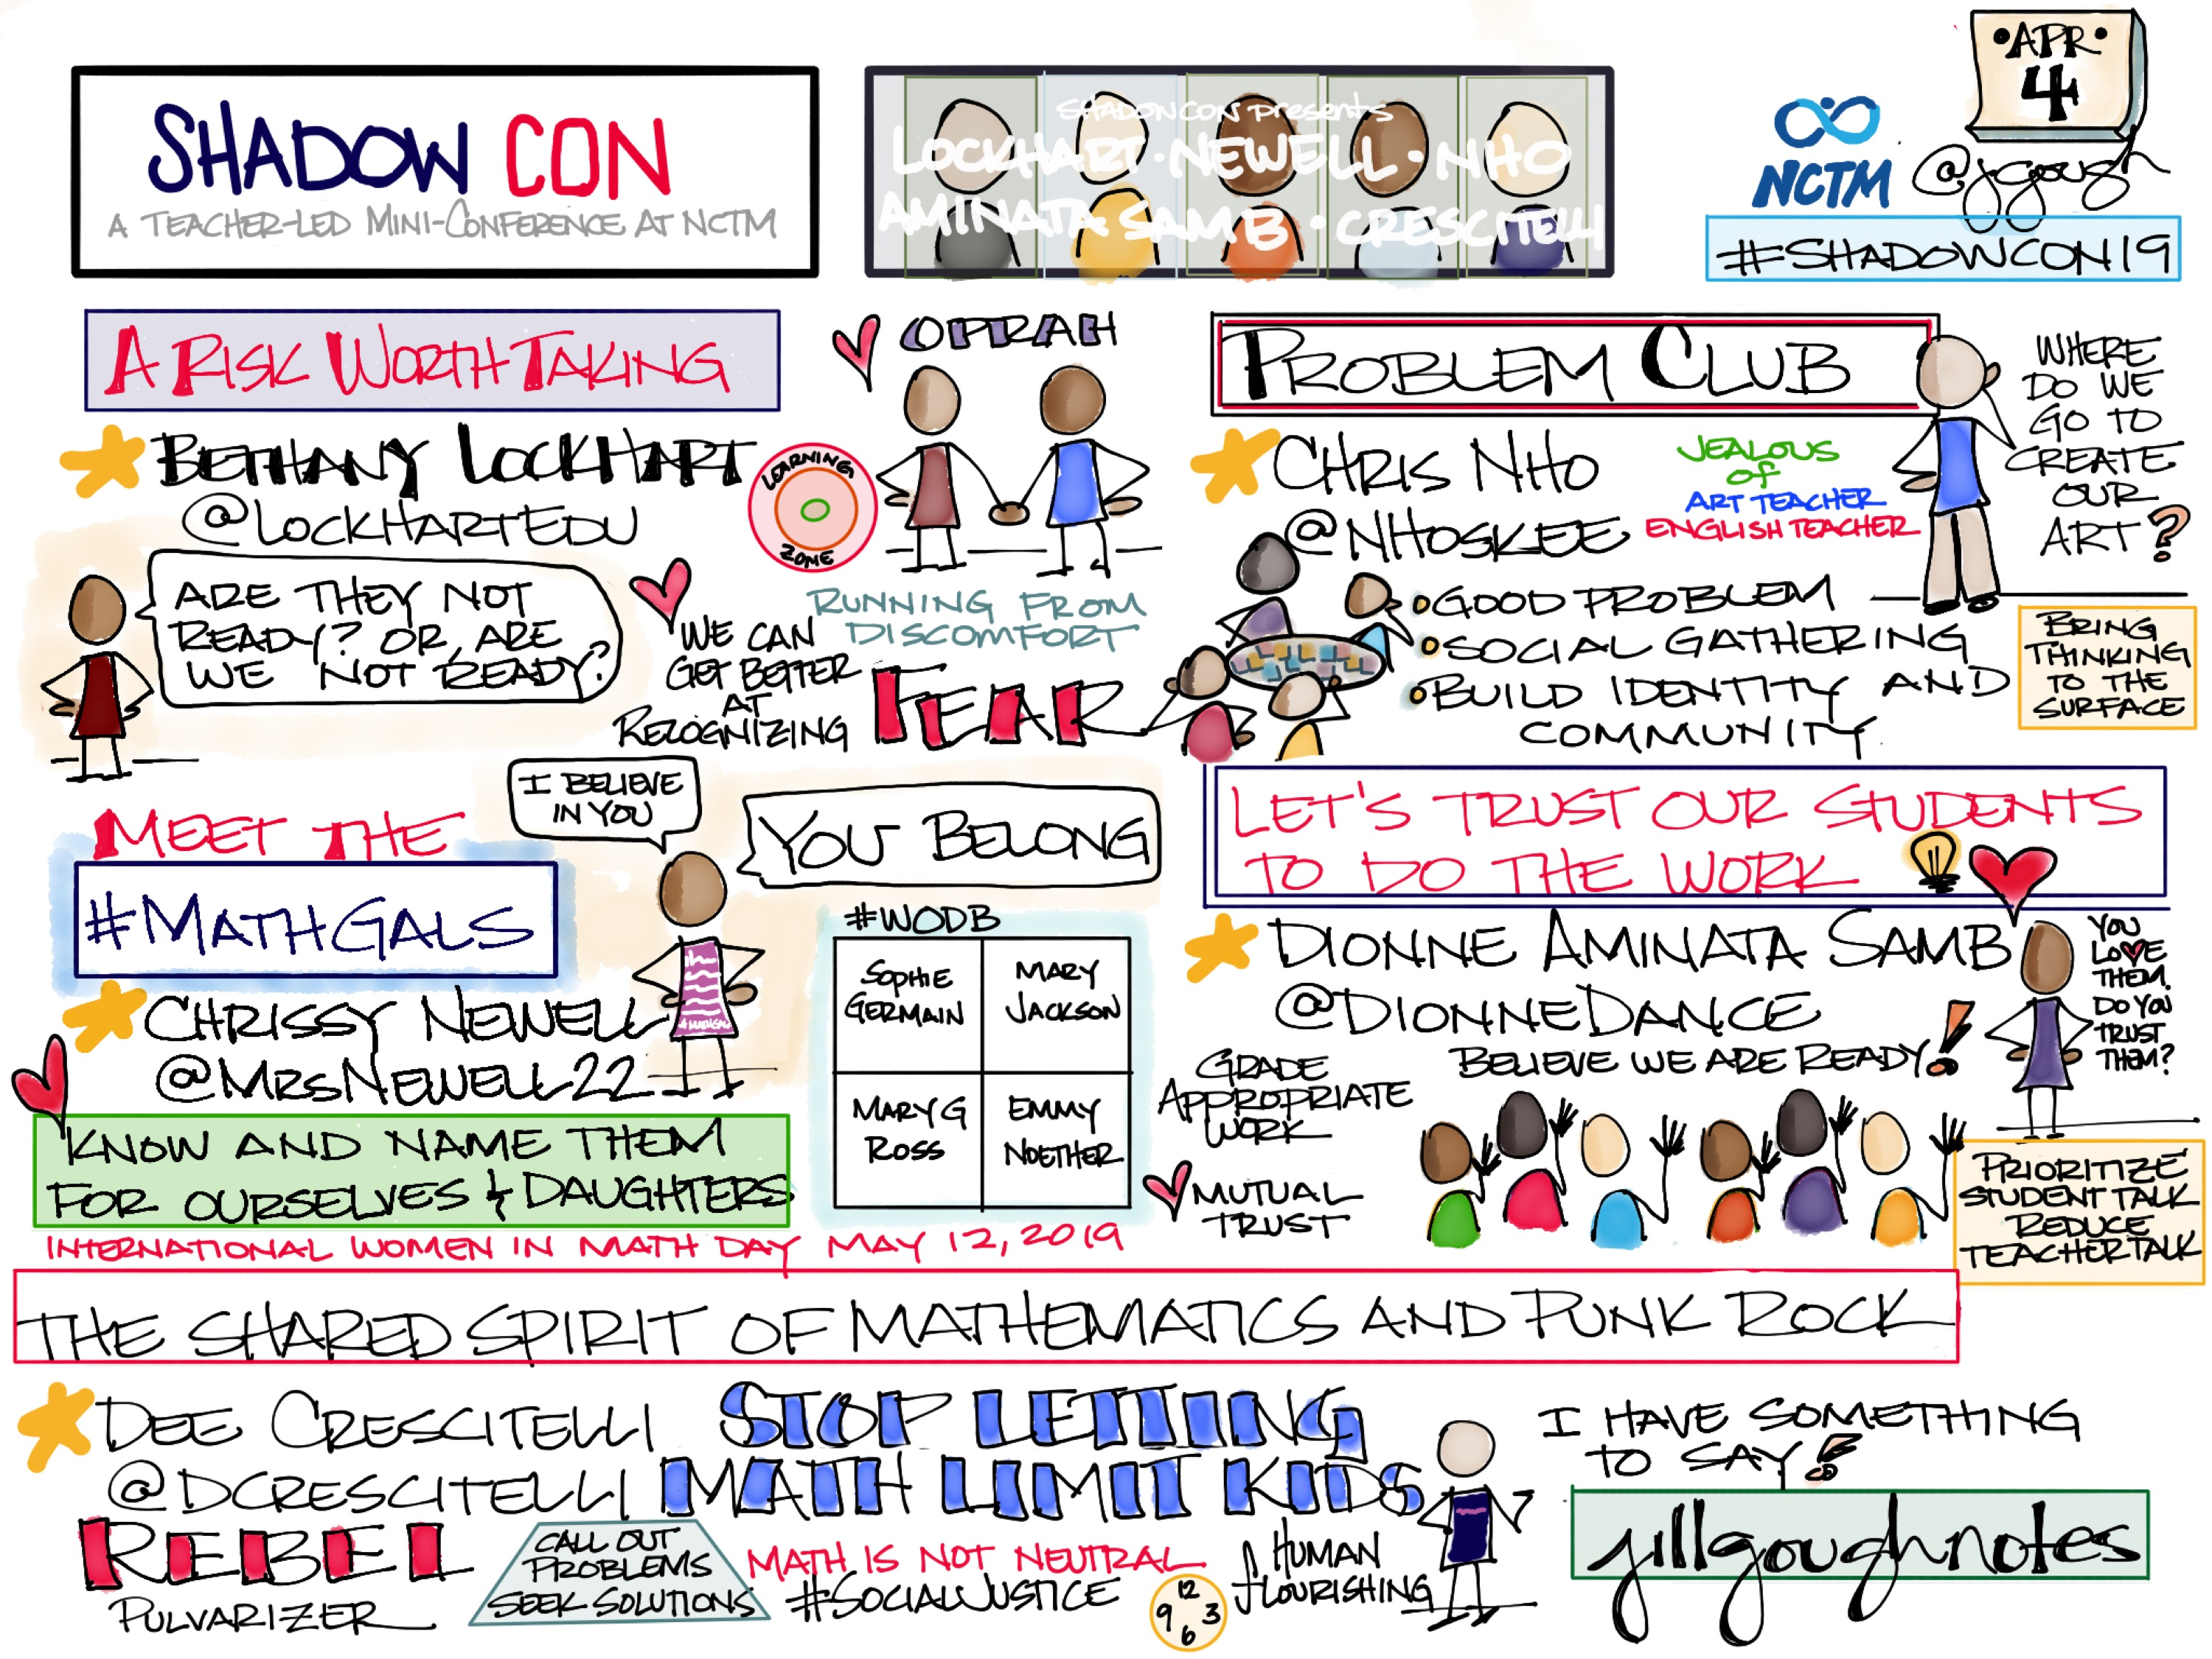 Sharing my #ShadowCon19 #Sketchnotes: #LifeChangingMessages from @LockhartEdu @MrsNewell22 @NHoskee @DionneDance @DCrescitelli